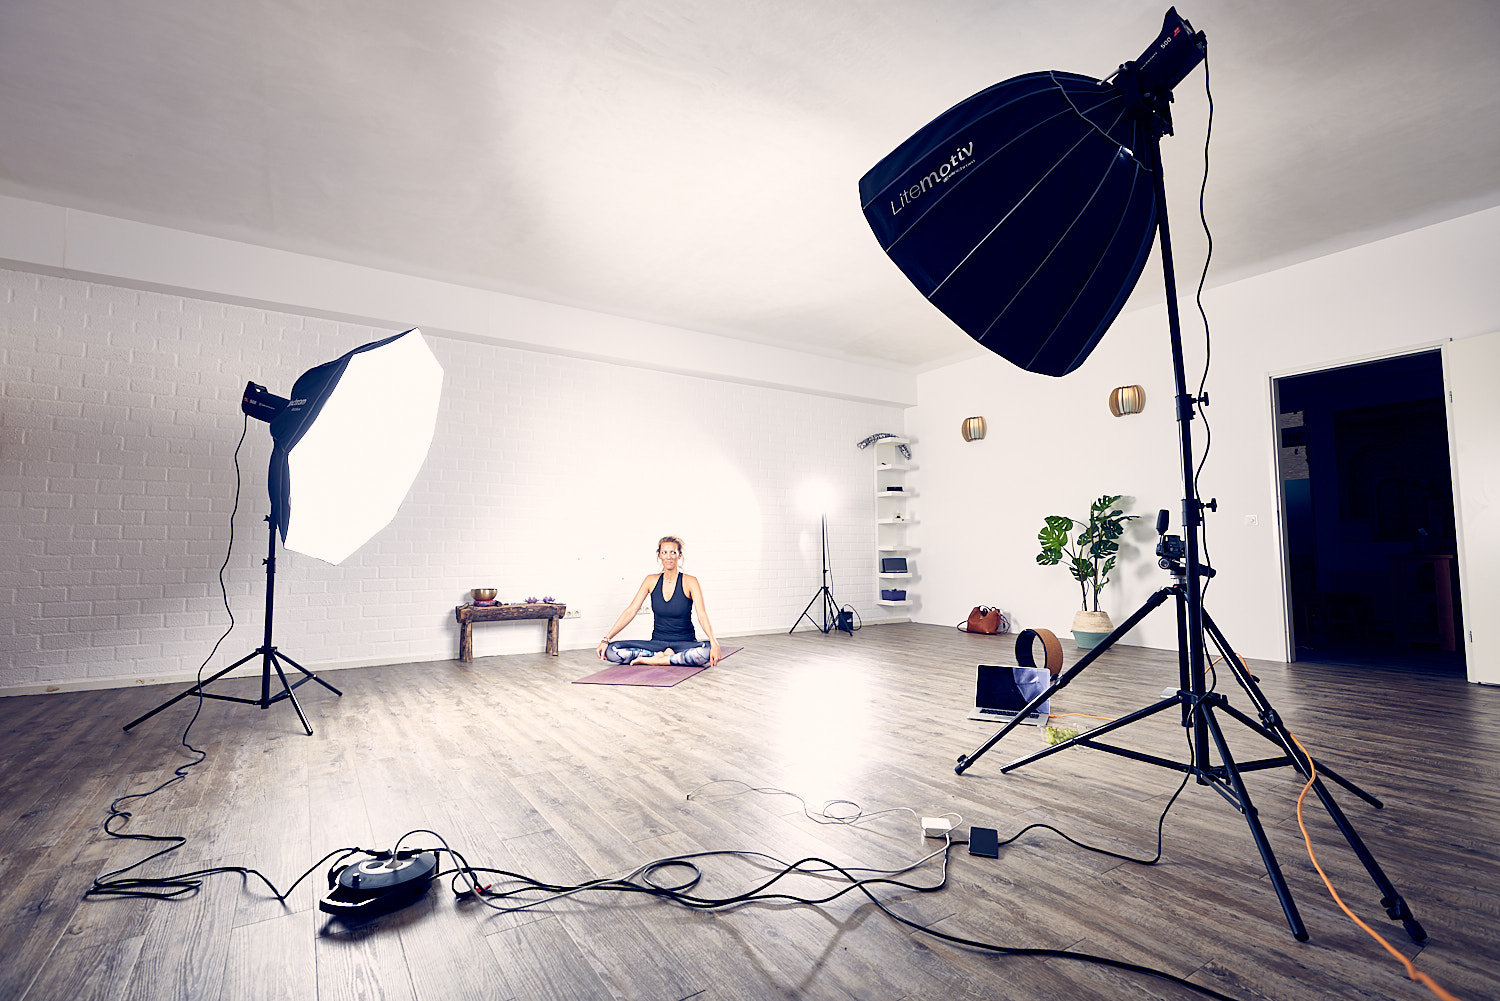 Behind the scenes of a professional photoshoot in the yogastudio with female yogi Mandy Beun